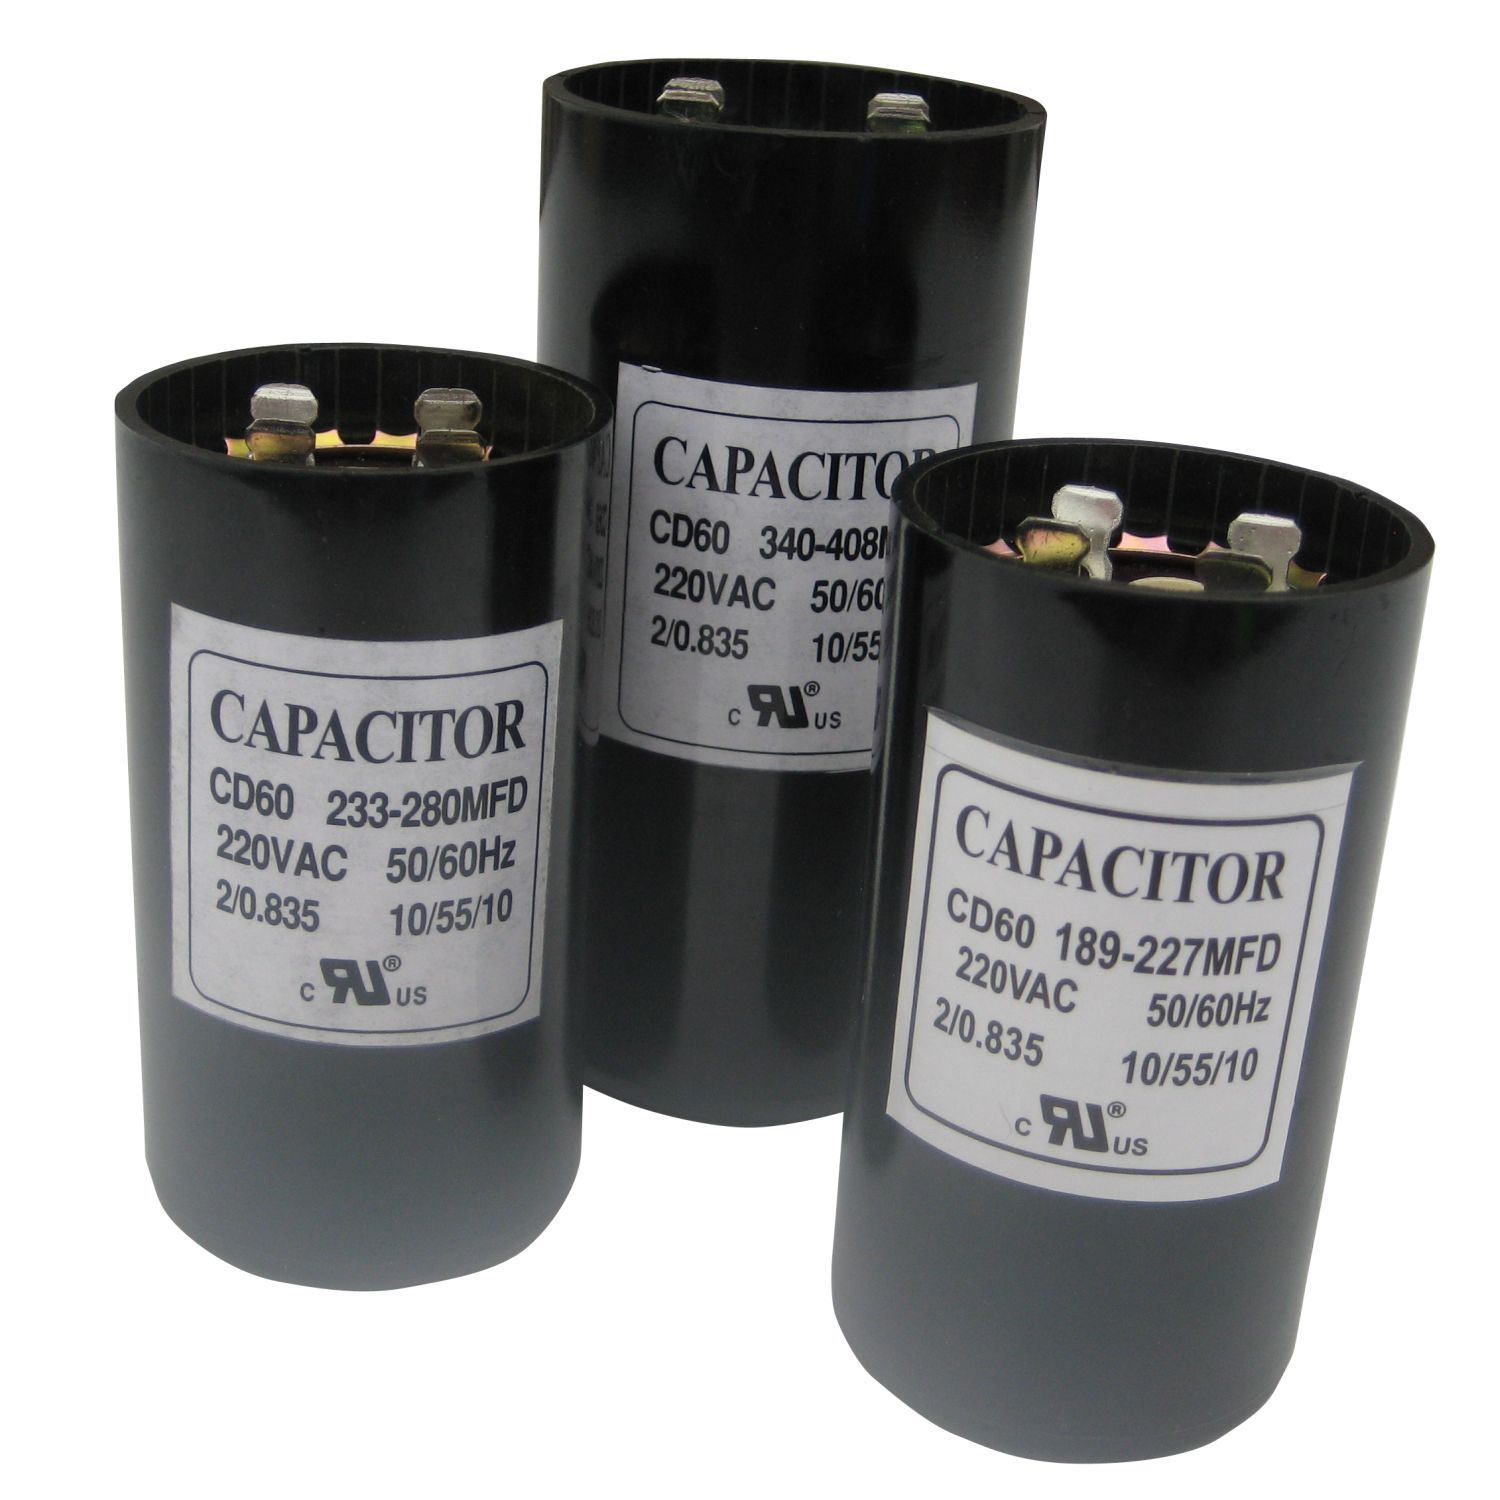 261413692382 on sizing capacitors for motors